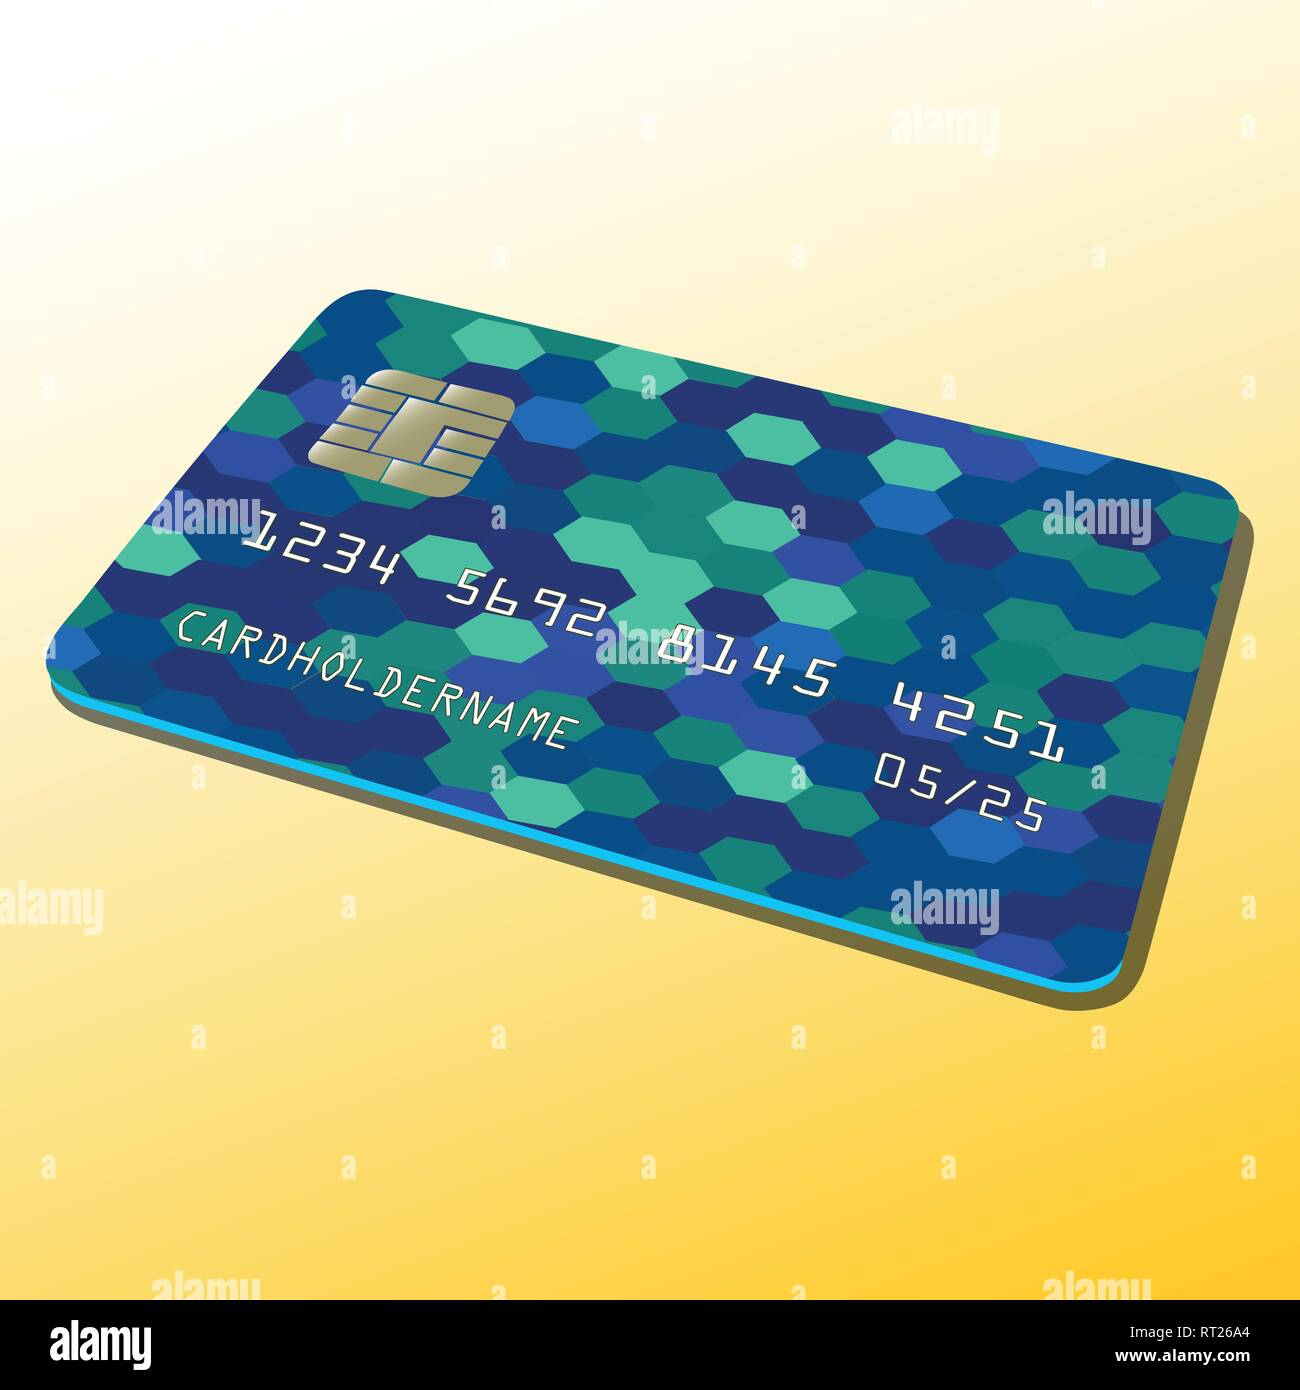 Vector illustration of a Bank card. Pyramid of money. Colorful abstract design. - Stock Vector